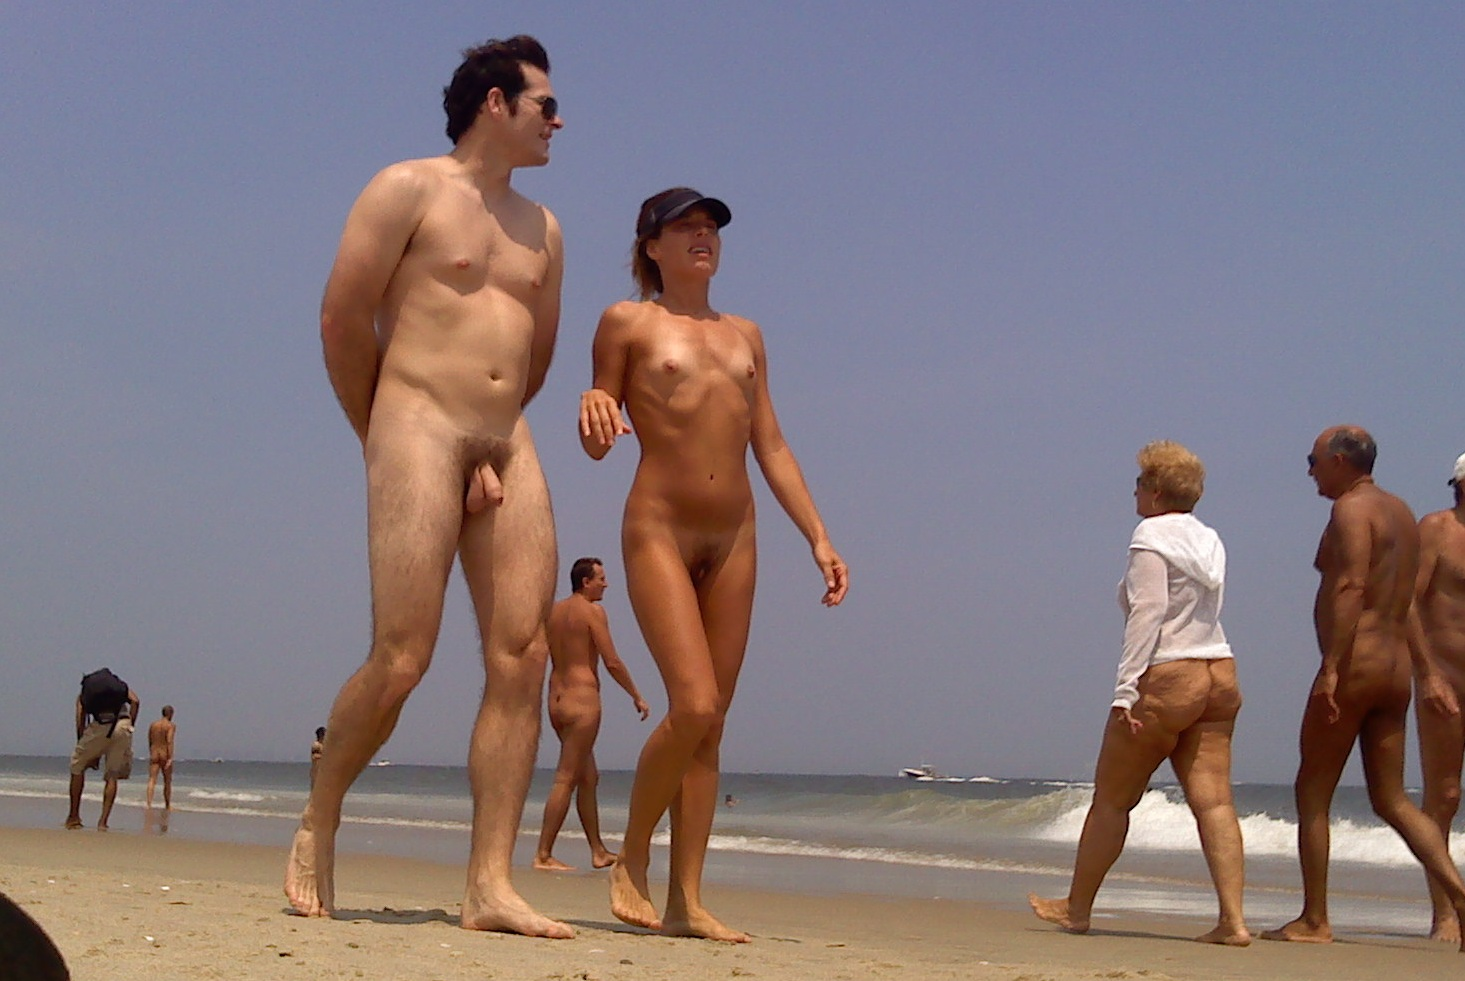 this is a nude beach now